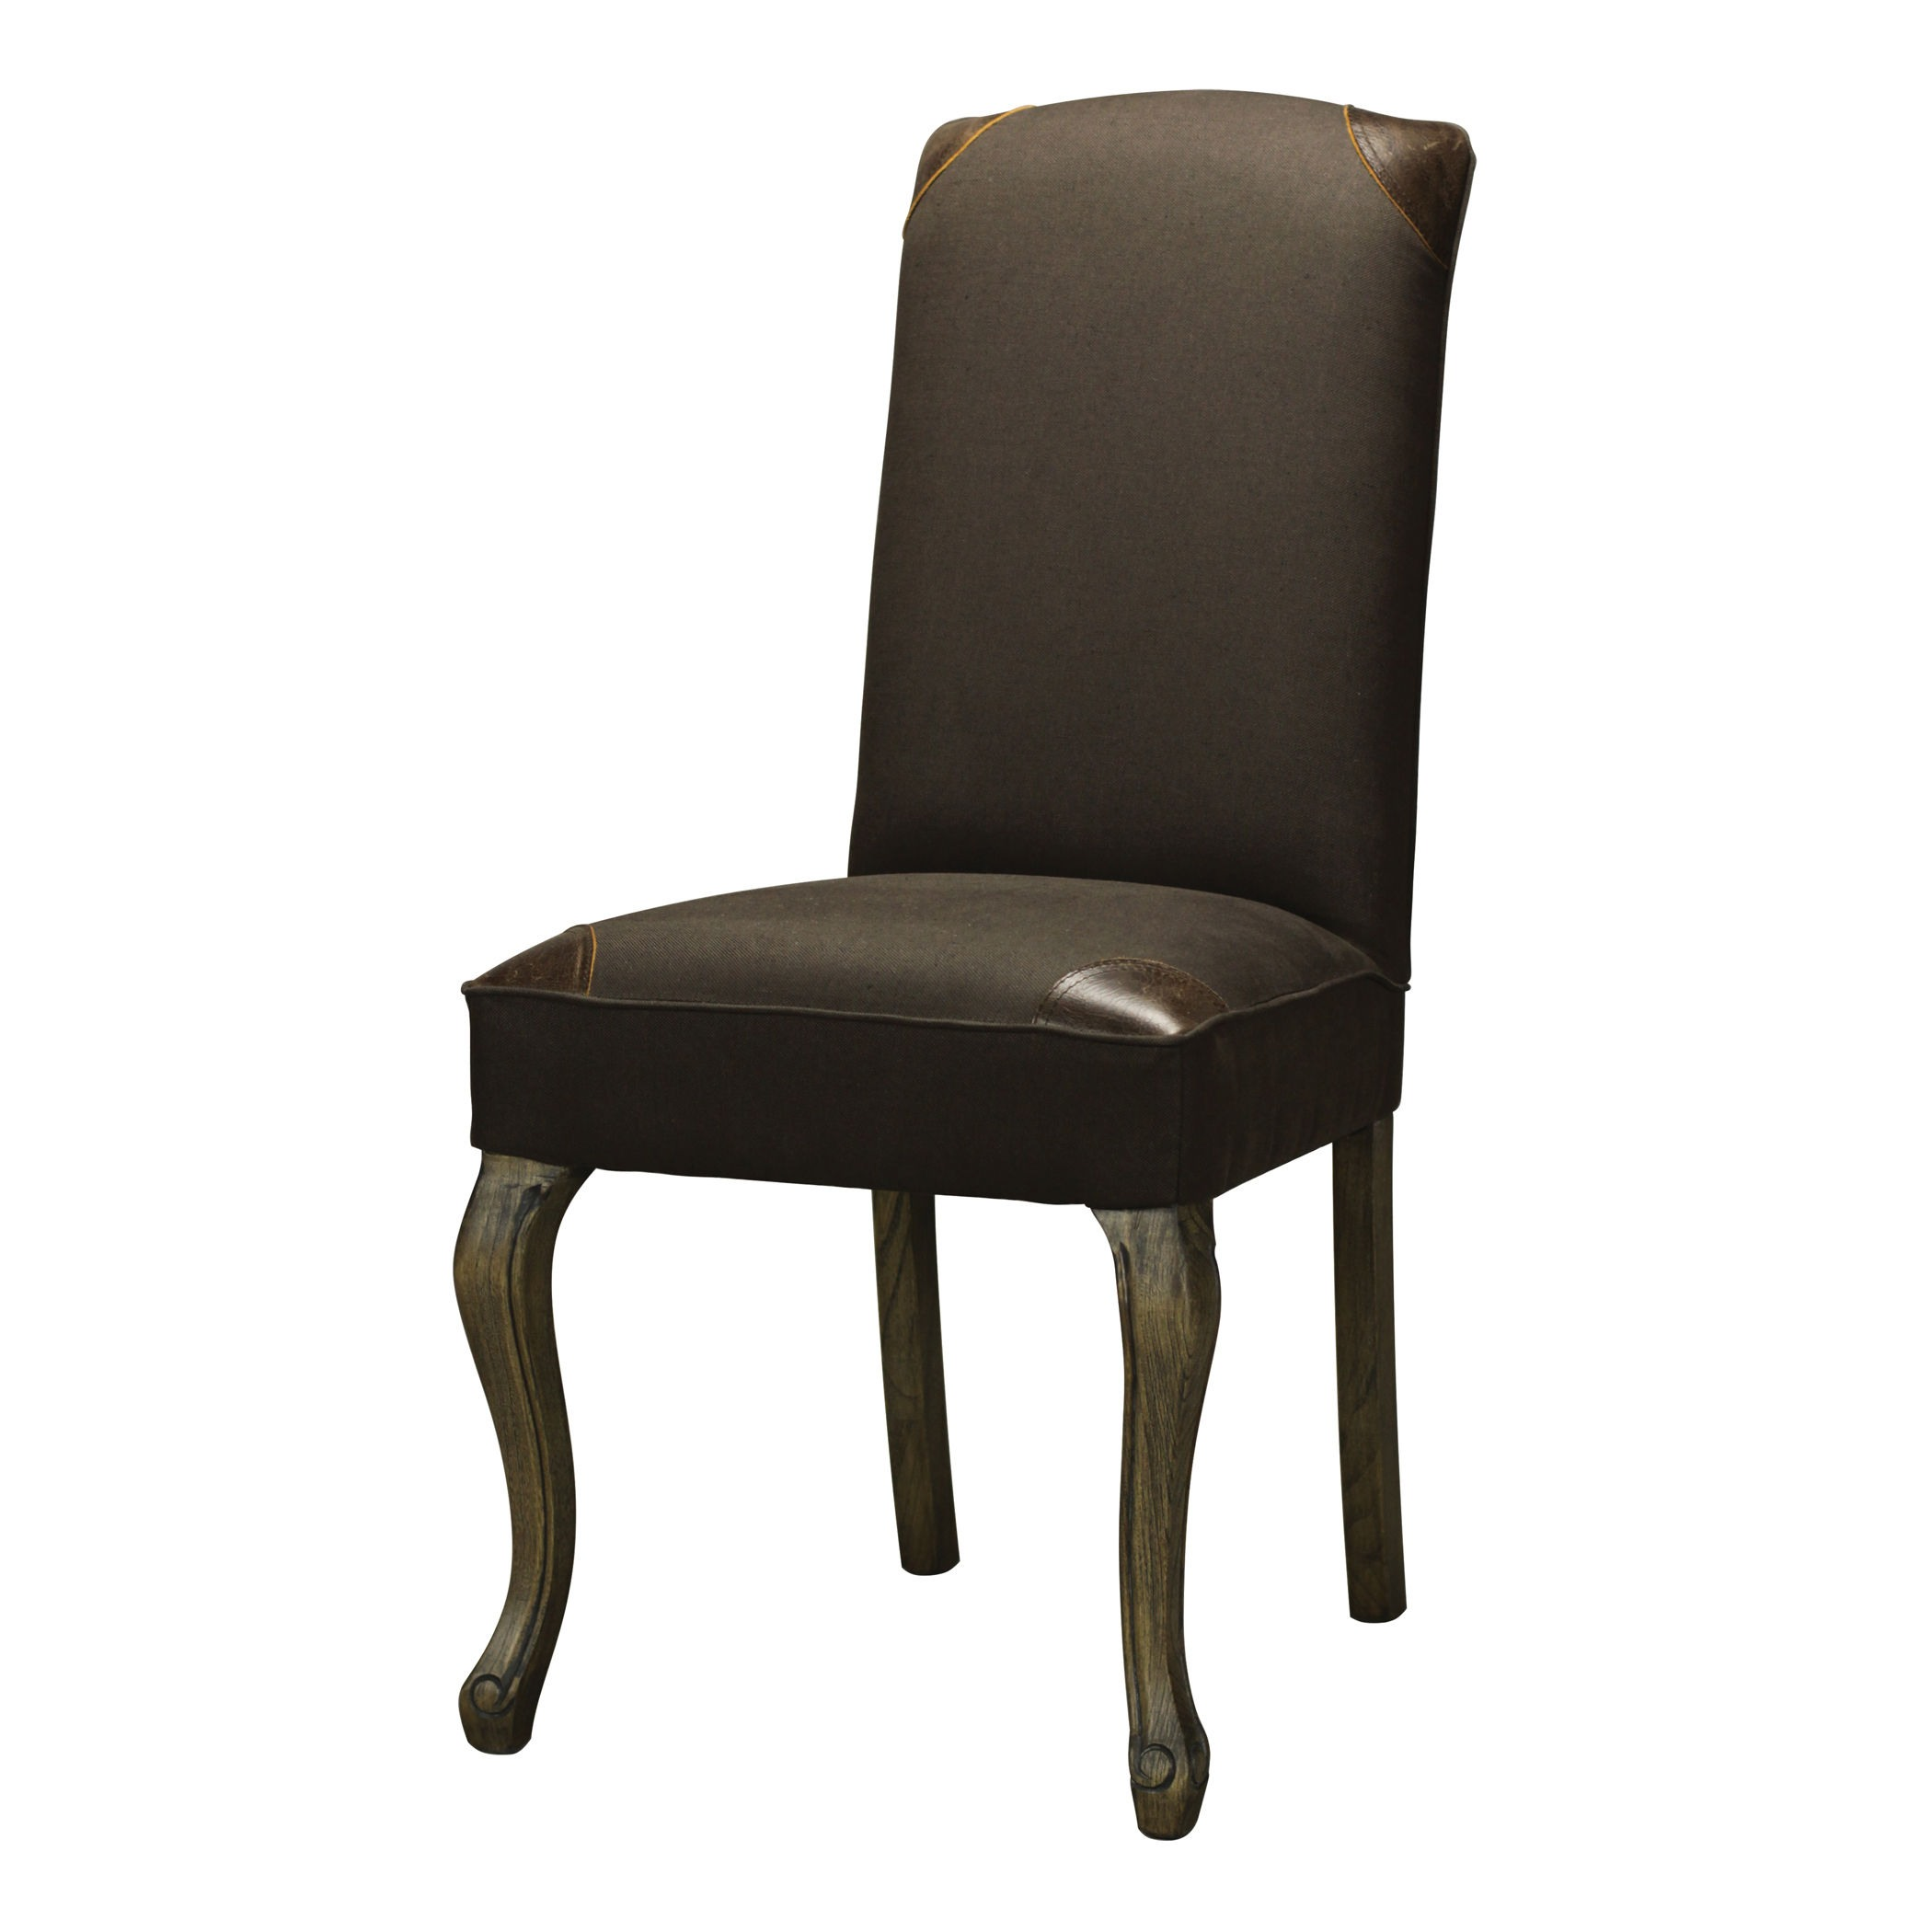 Sterling Industries-133-001-Stanhope - 19 Inch Chair  Aged Driftwood/Brown Finish